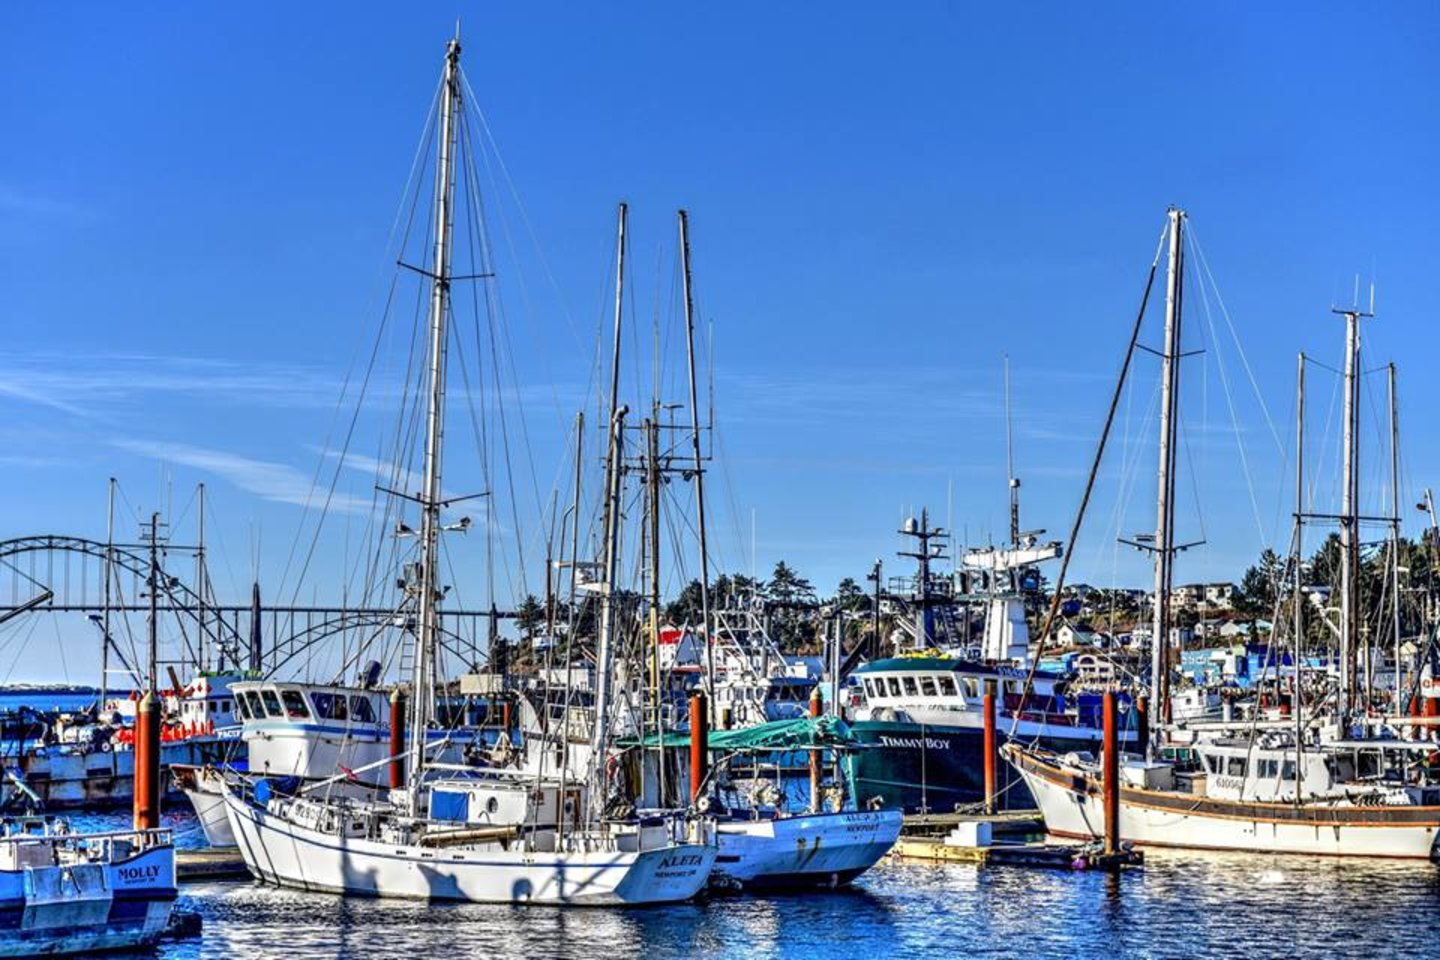 Walk along the bay front and watch the active fishing fleet.